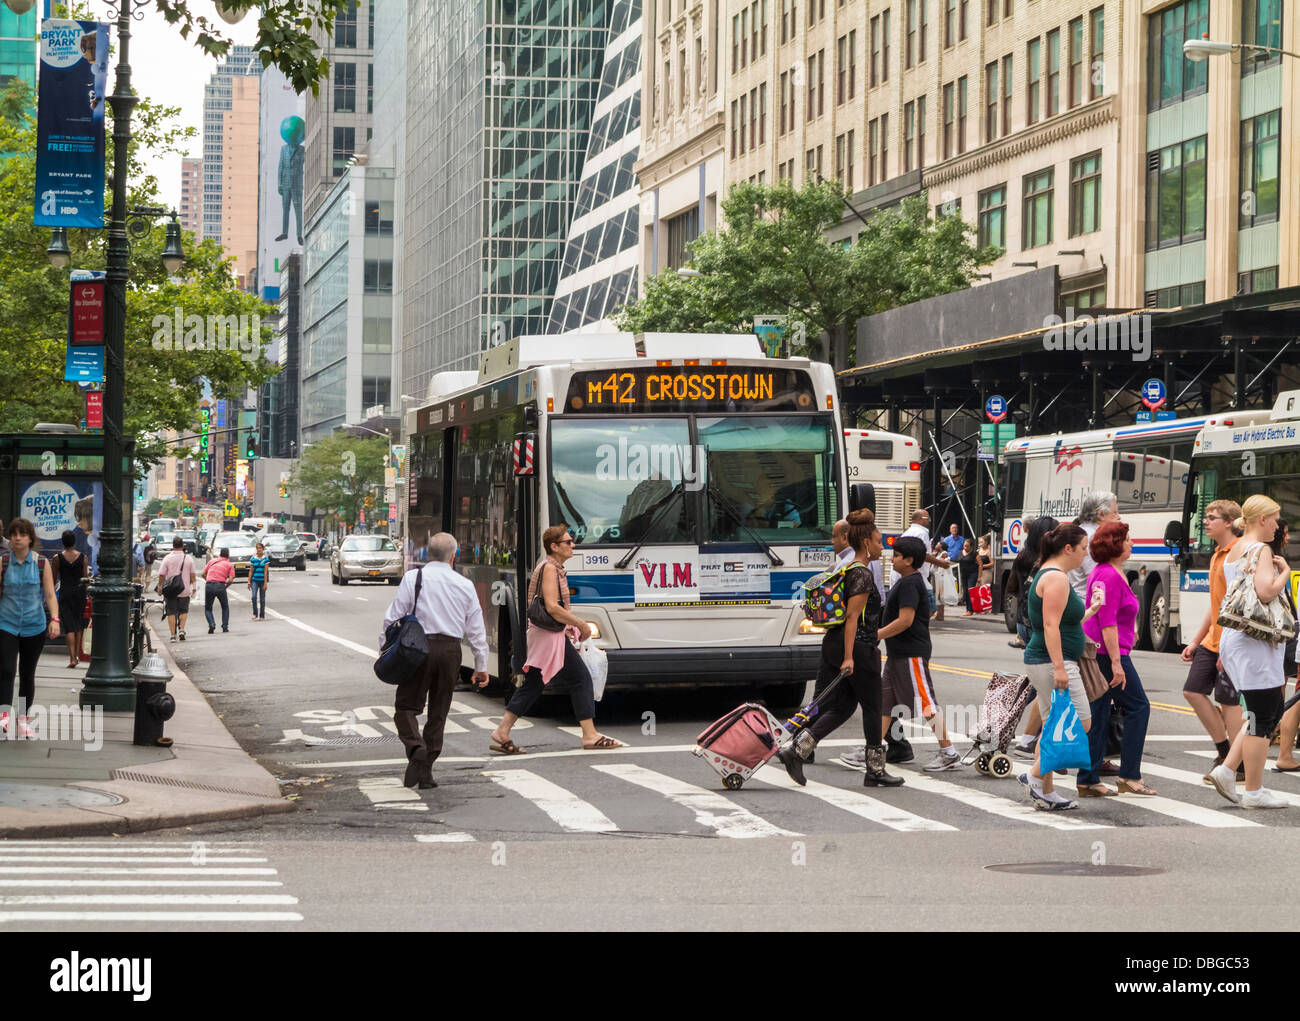 Bus at crosswalk road junction on a city street in Manhattan, New York City - Stock Image